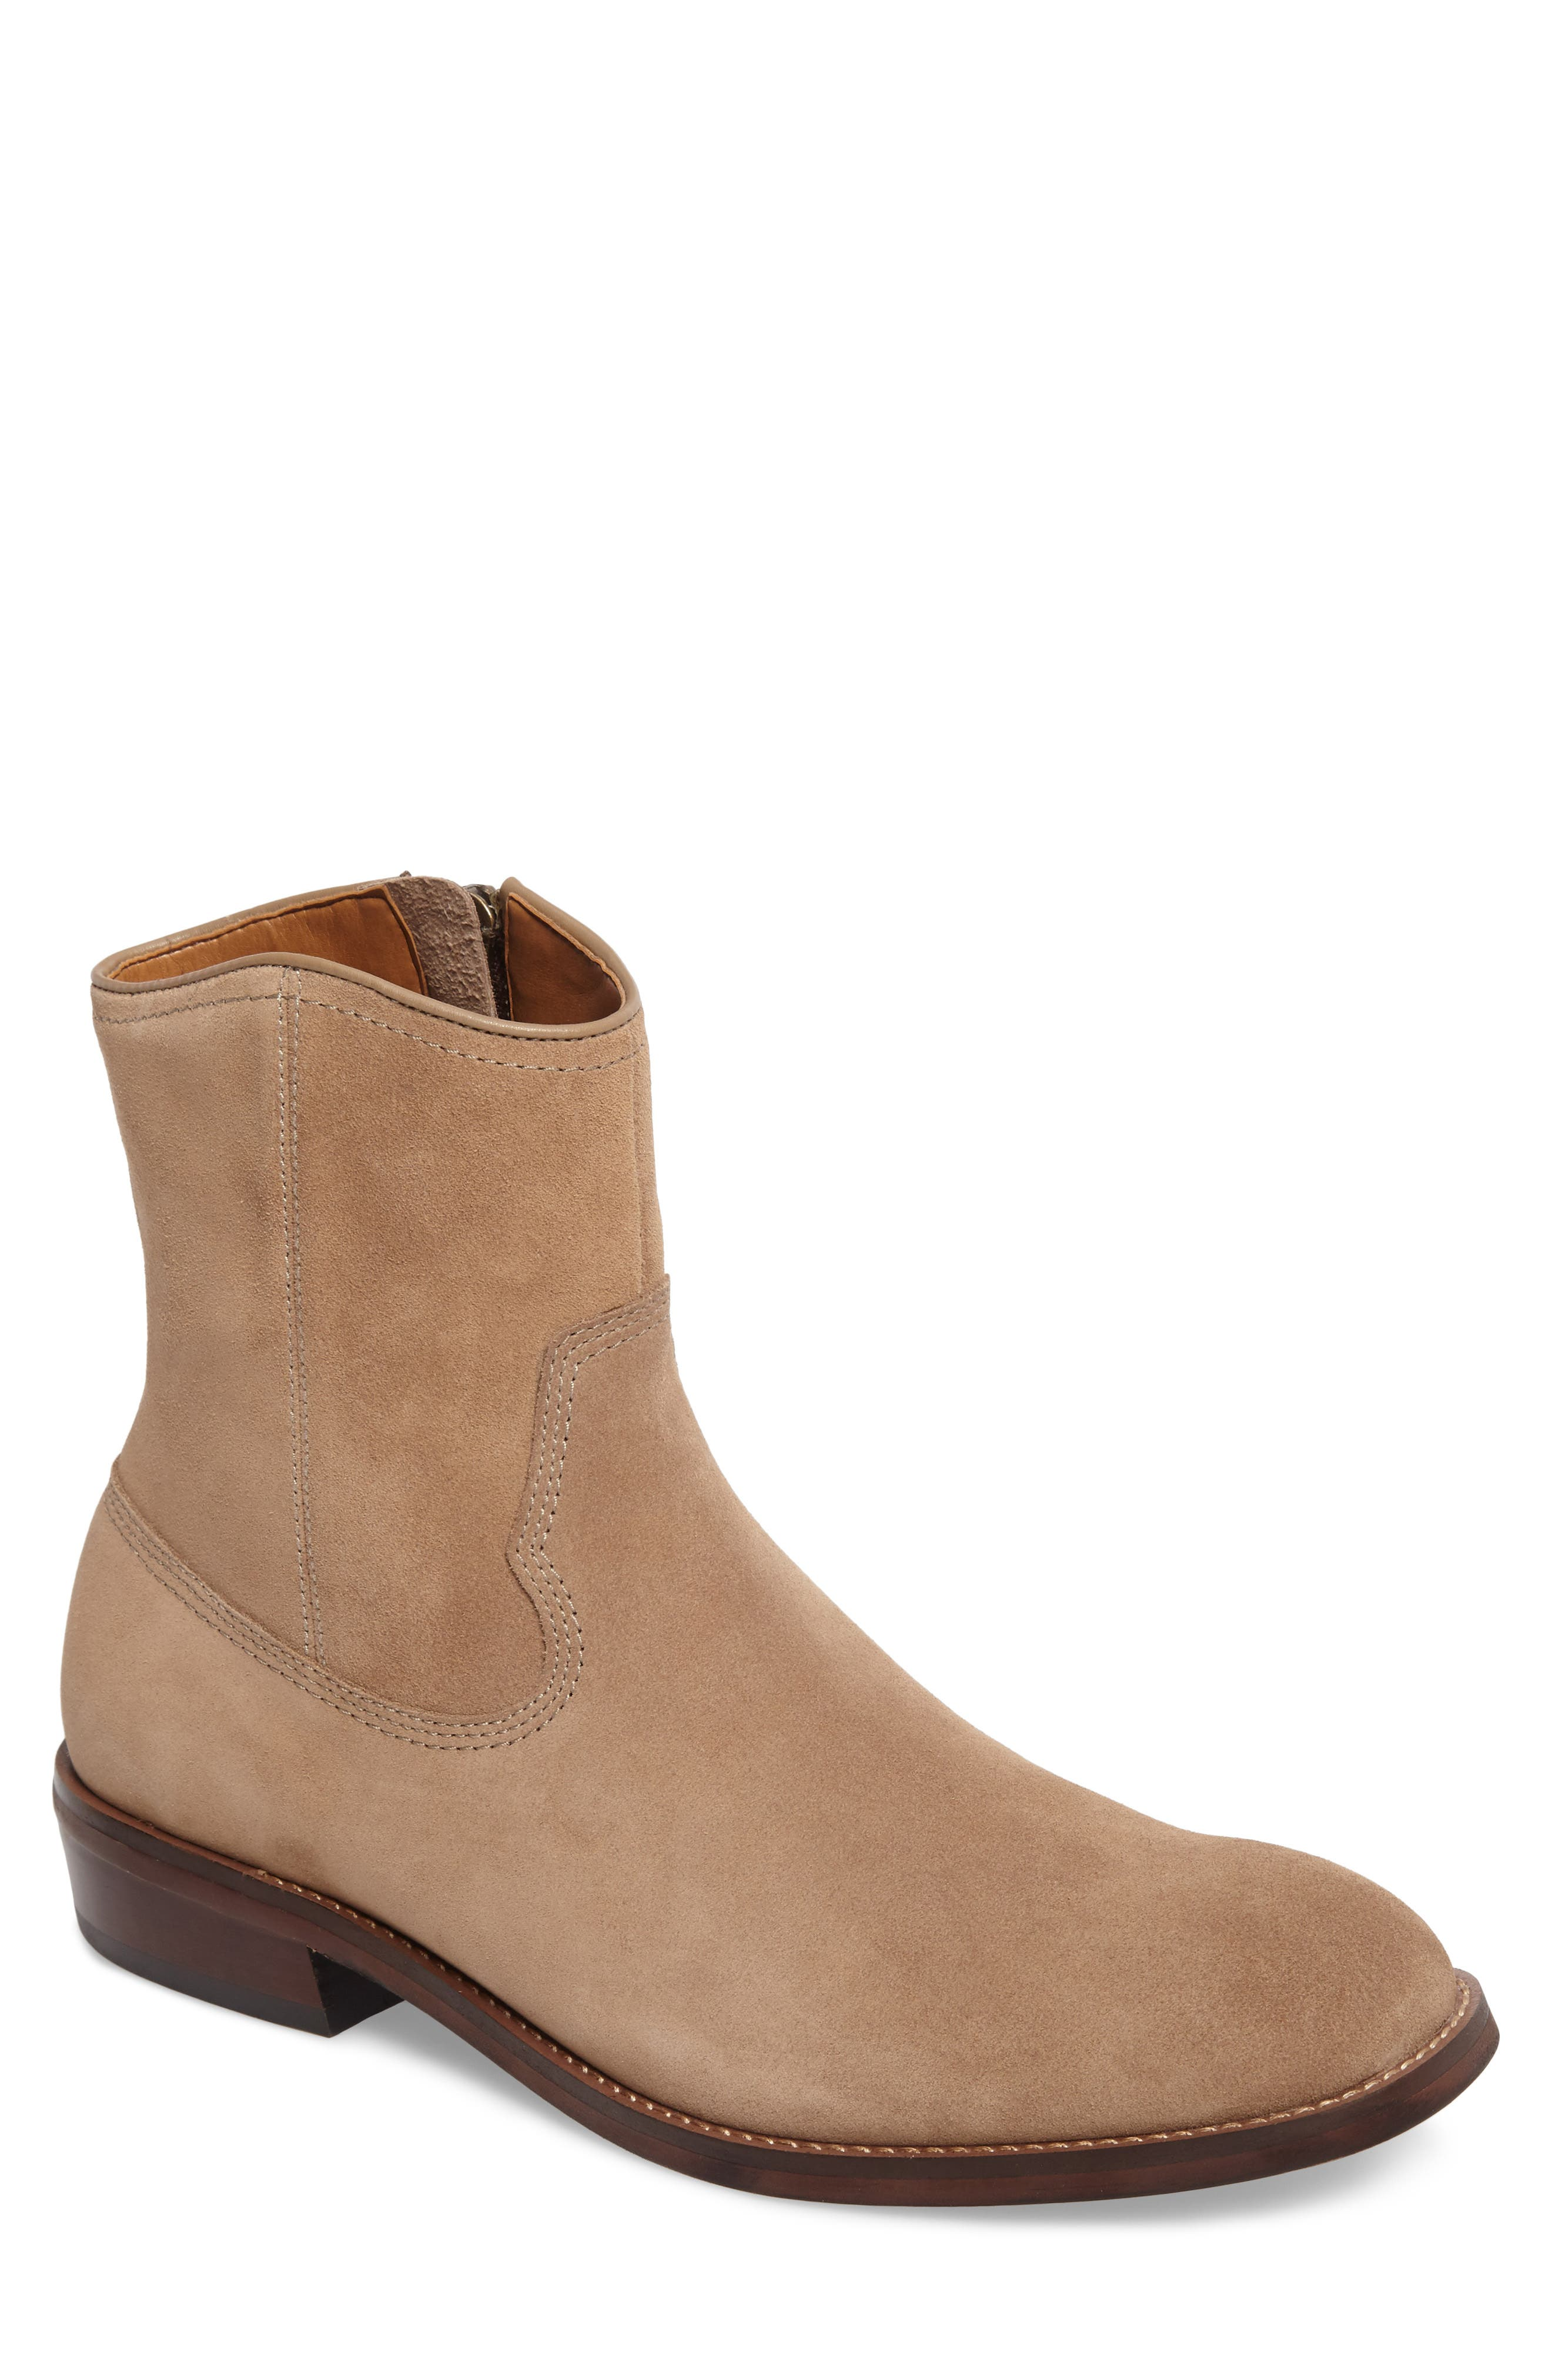 Fazio Zip Boot,                             Main thumbnail 1, color,